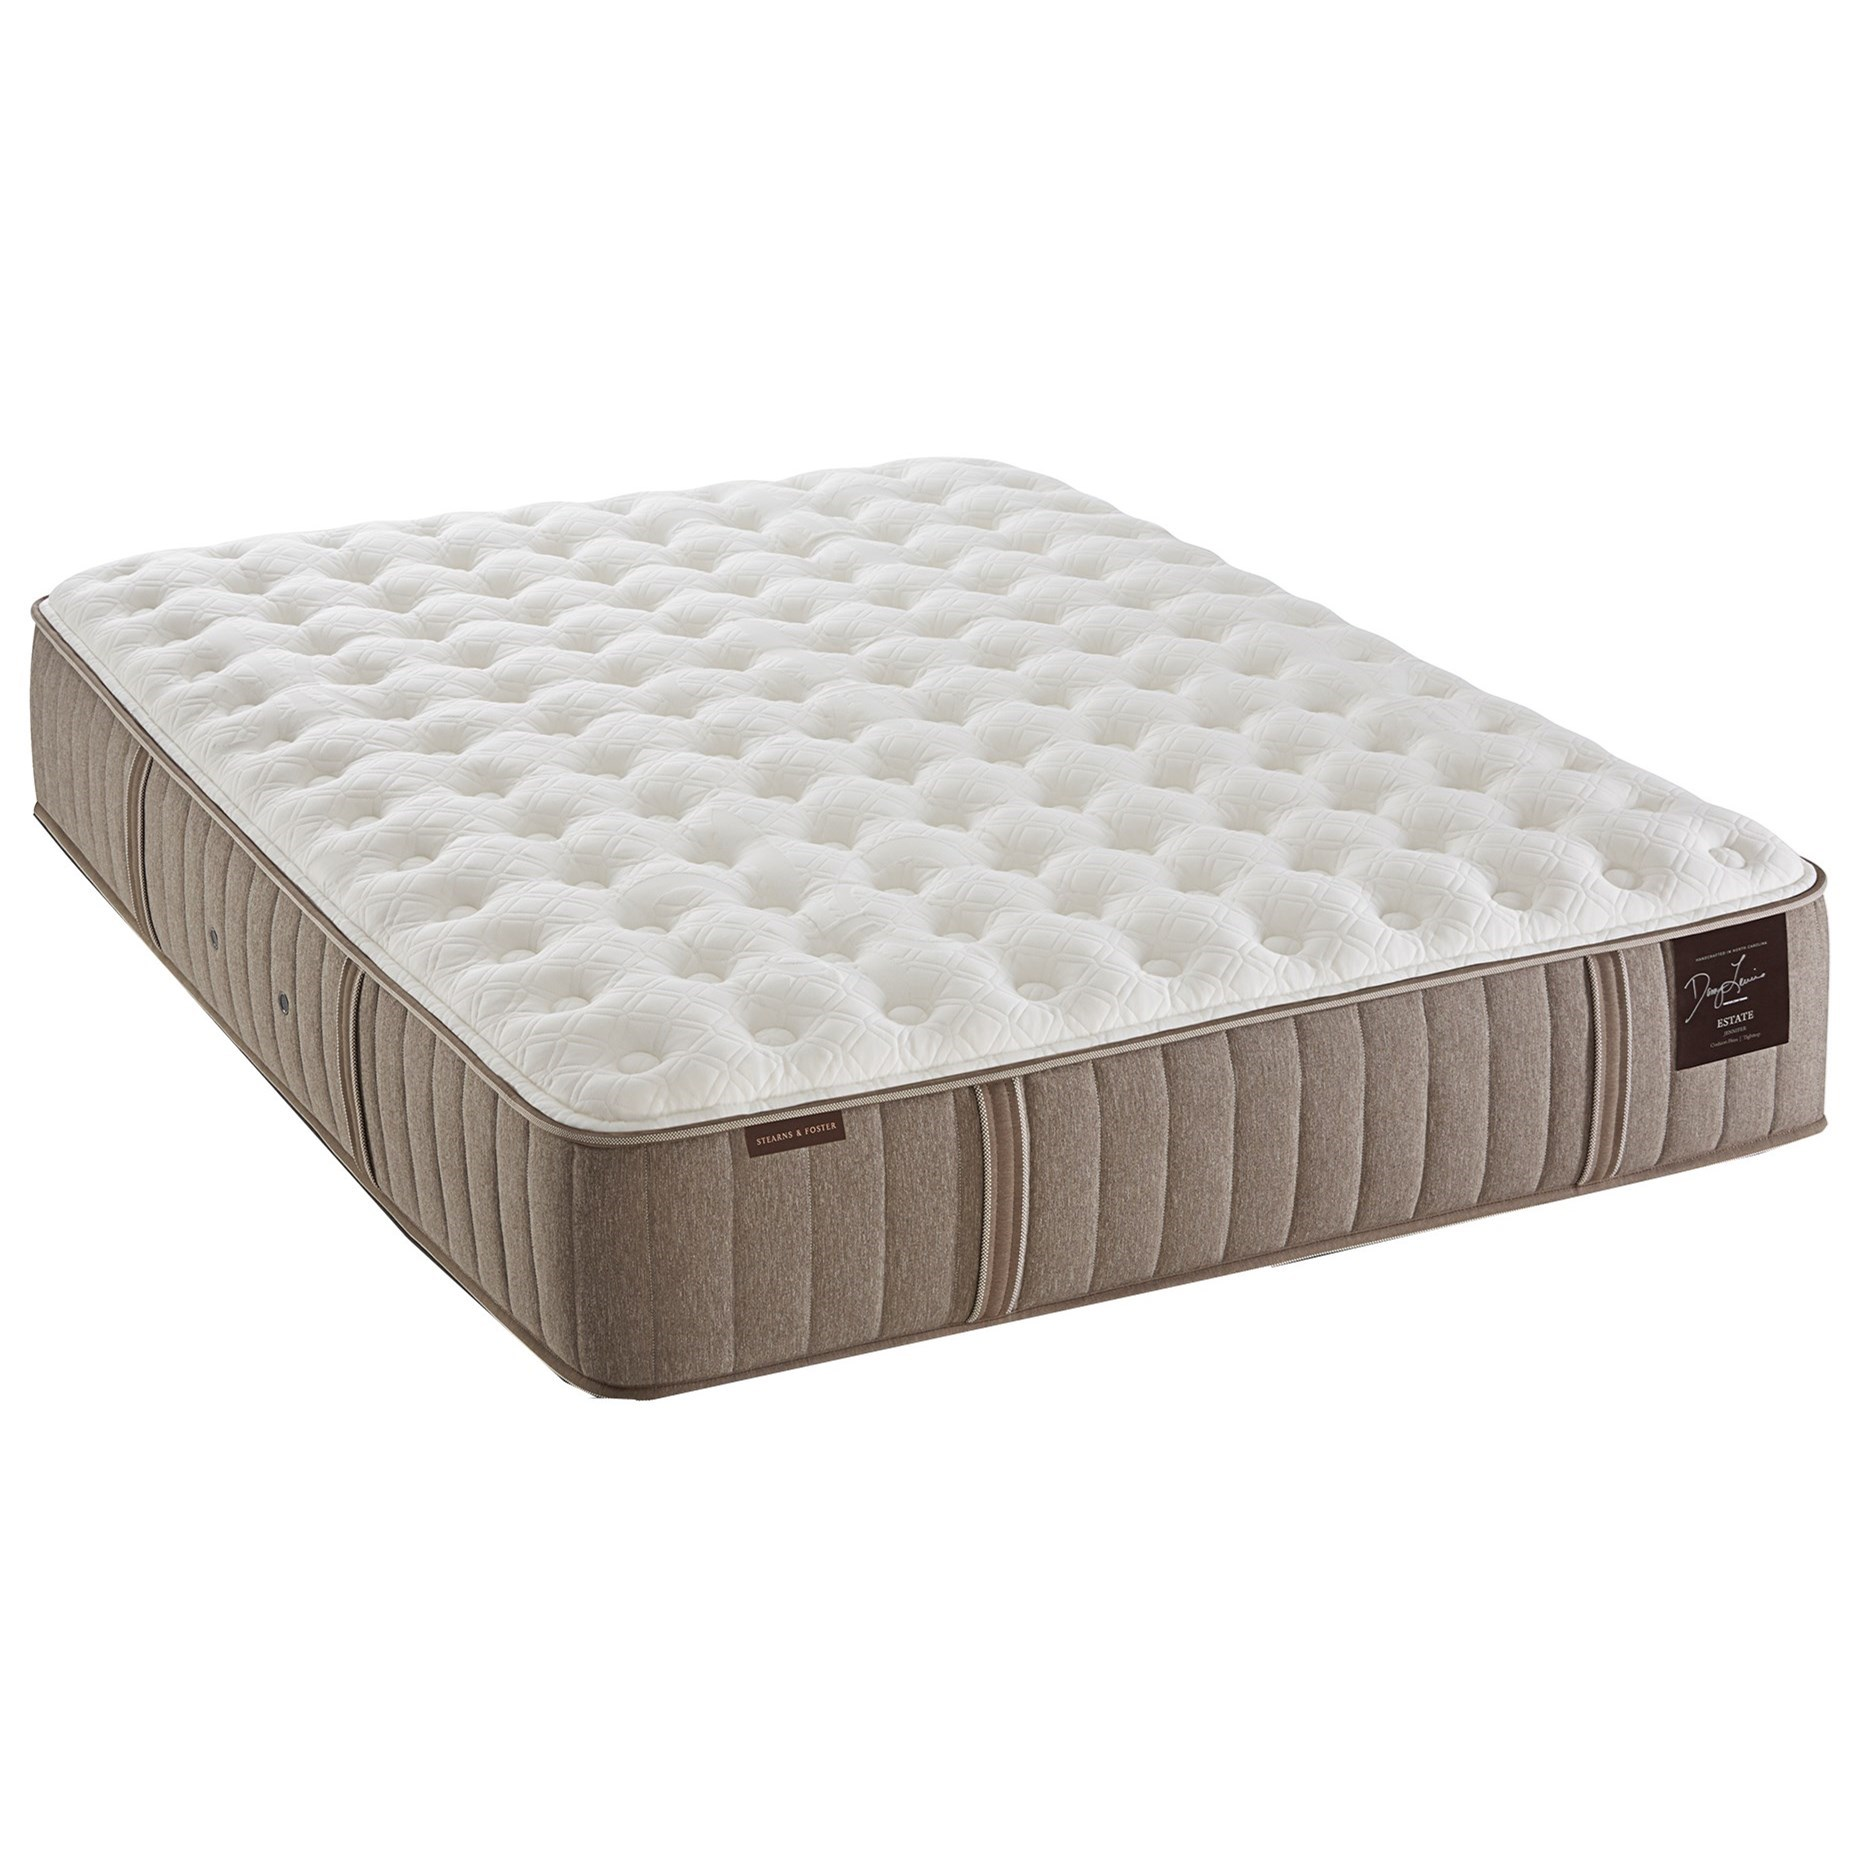 Stearns Foster Estate Mattress Stearns & Foster Villa Ascoli Luxury Firm Queen Cushion ...